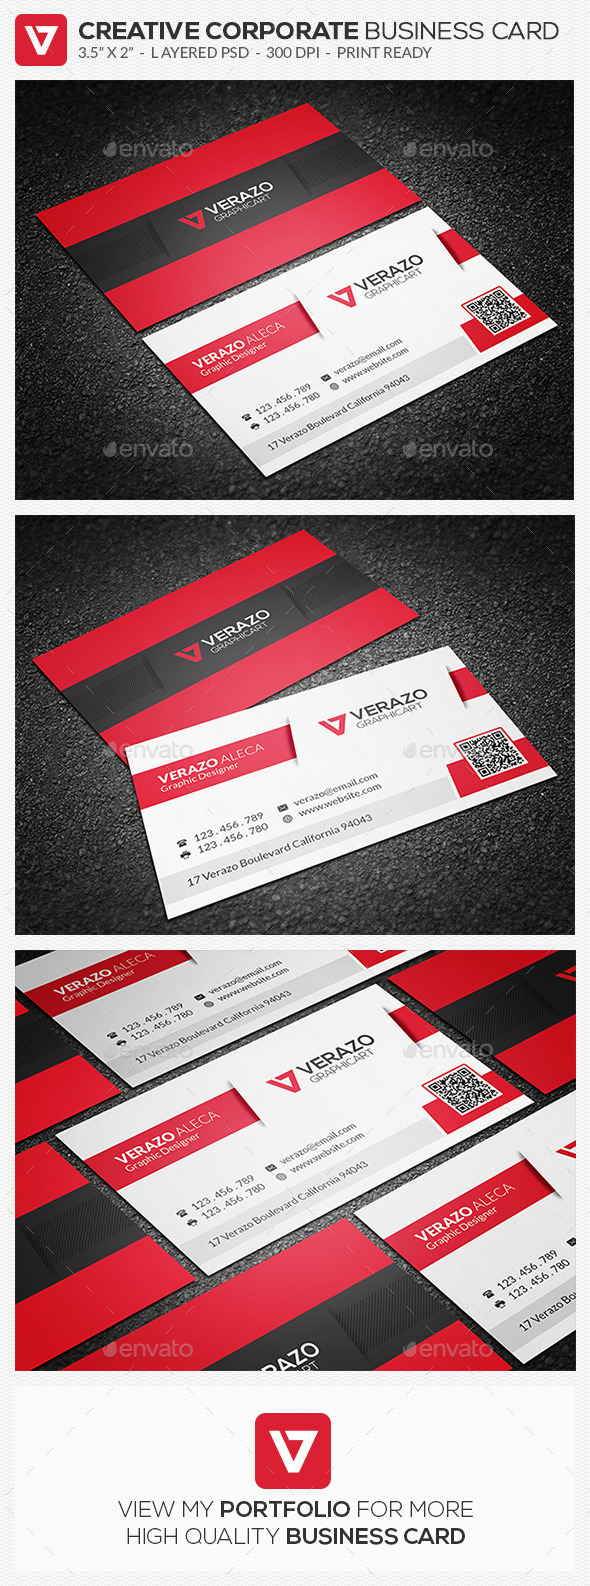 GraphicRiver Creative Corporate Business Card 71 10121315